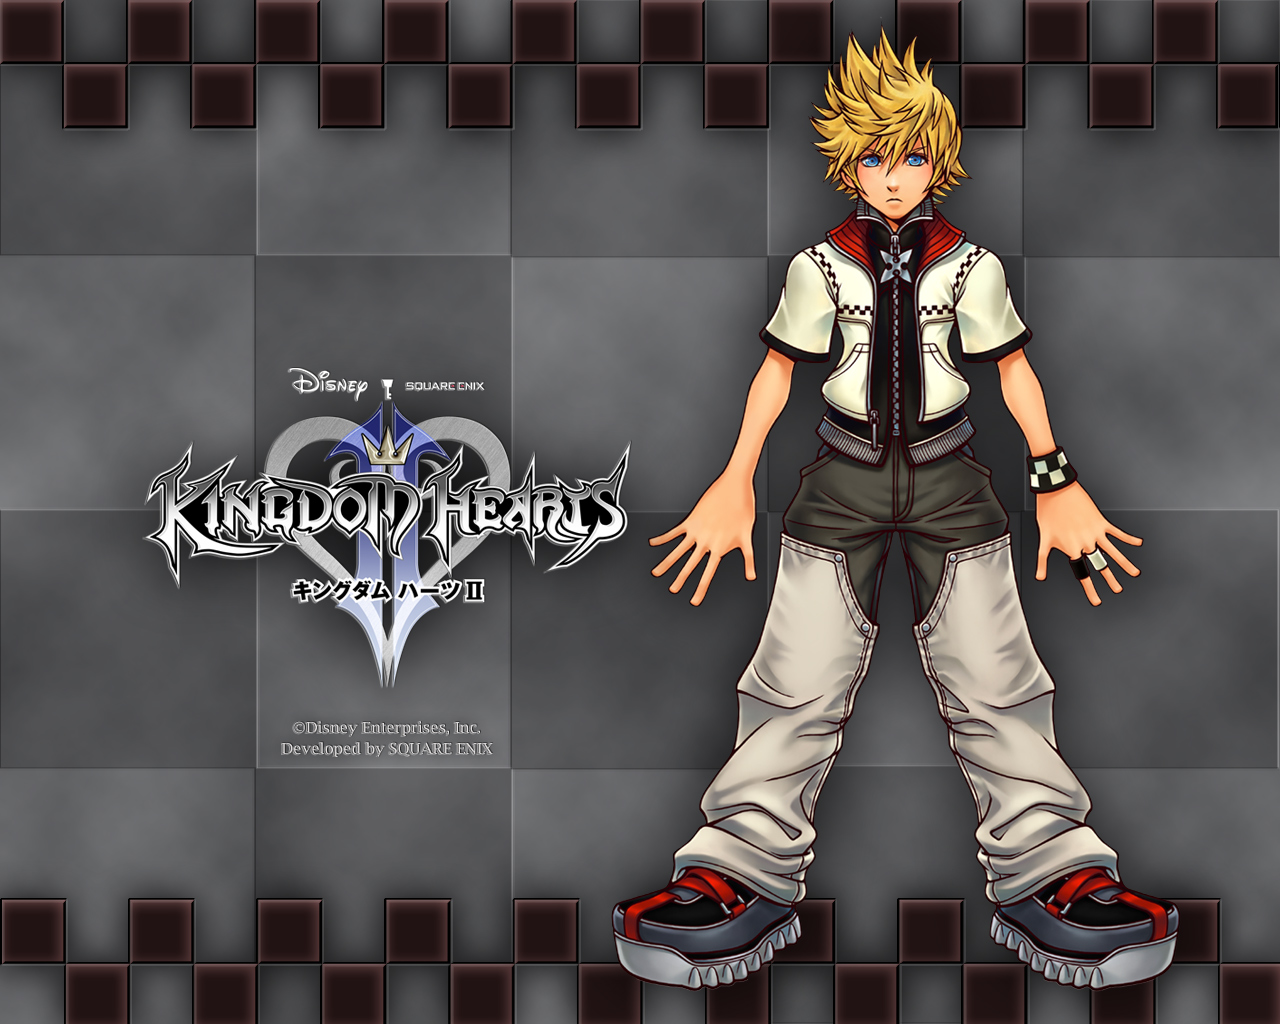 Kingdom Hearts 2   Kingdom Hearts Wallpaper 60340 1280x1024